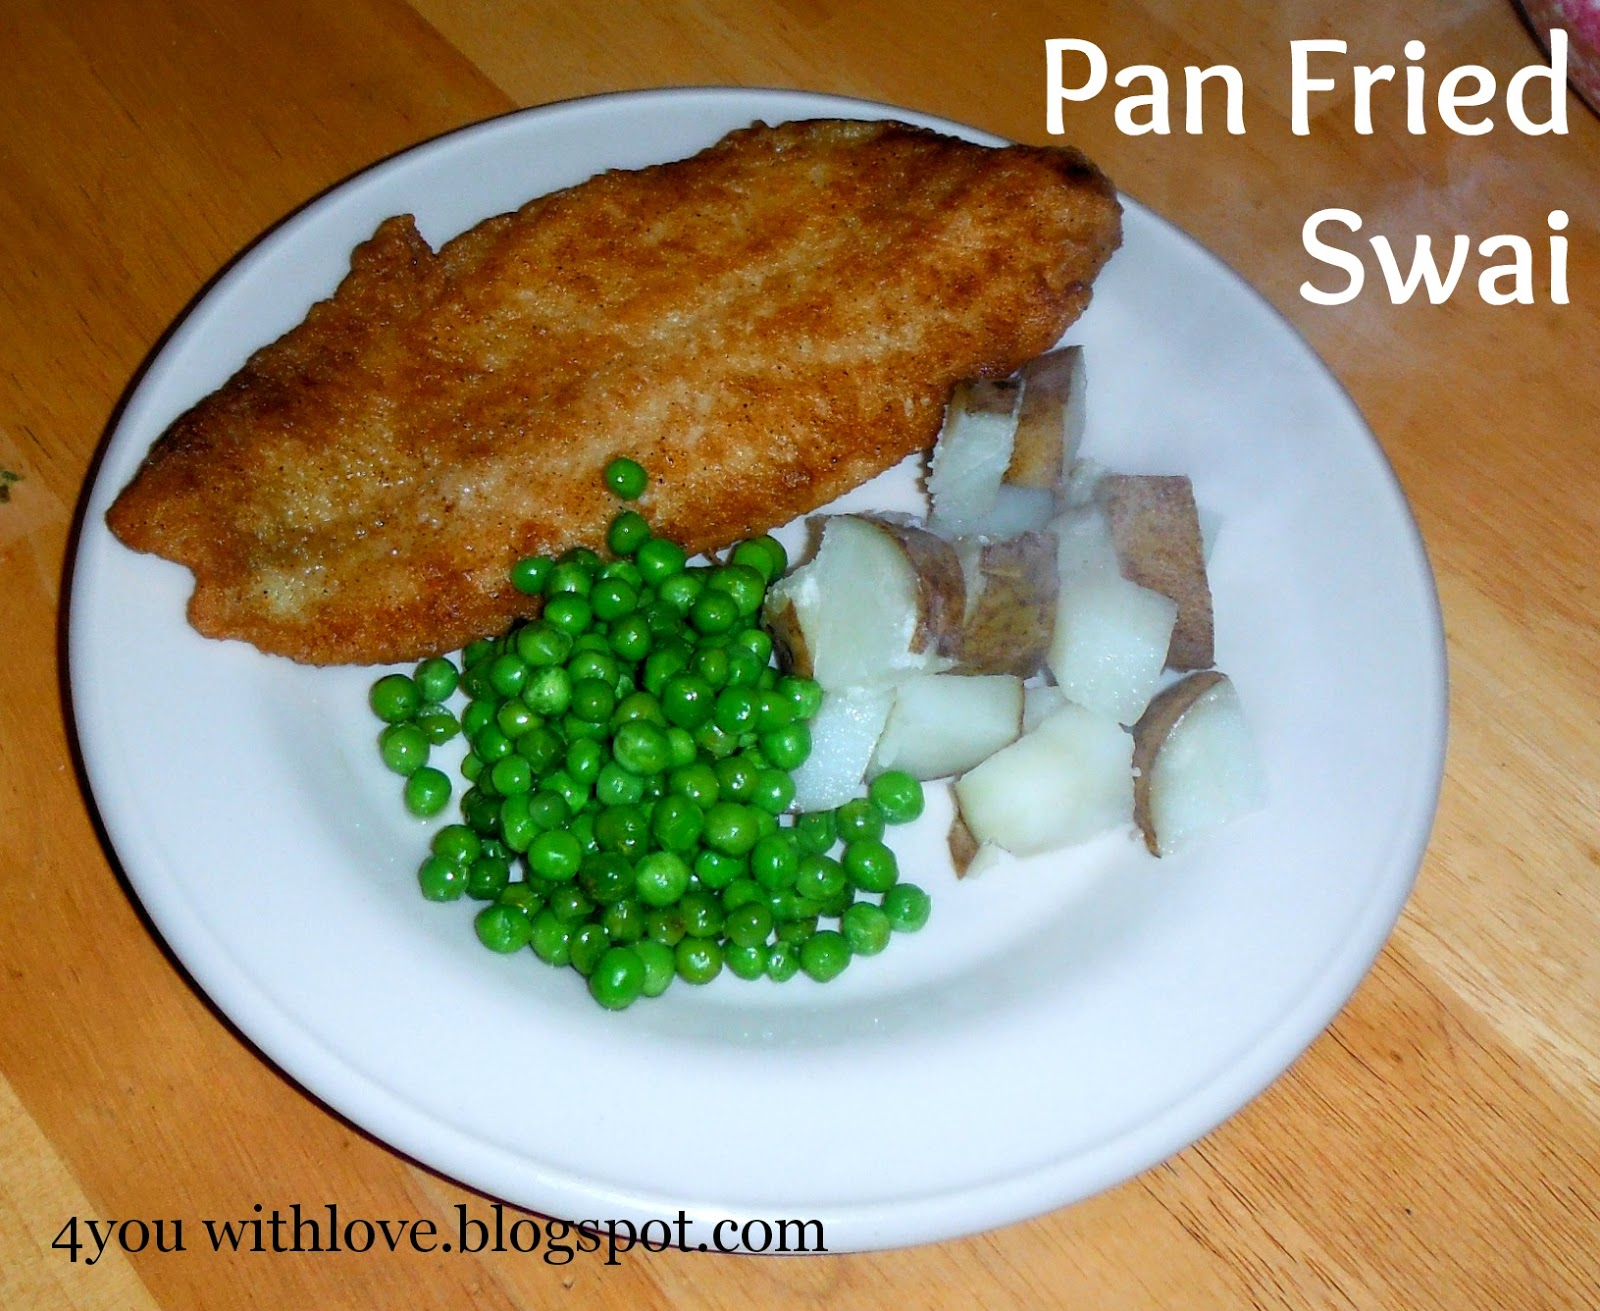 My Favorite Spices - Pan Fried Swai - 4 You With Love